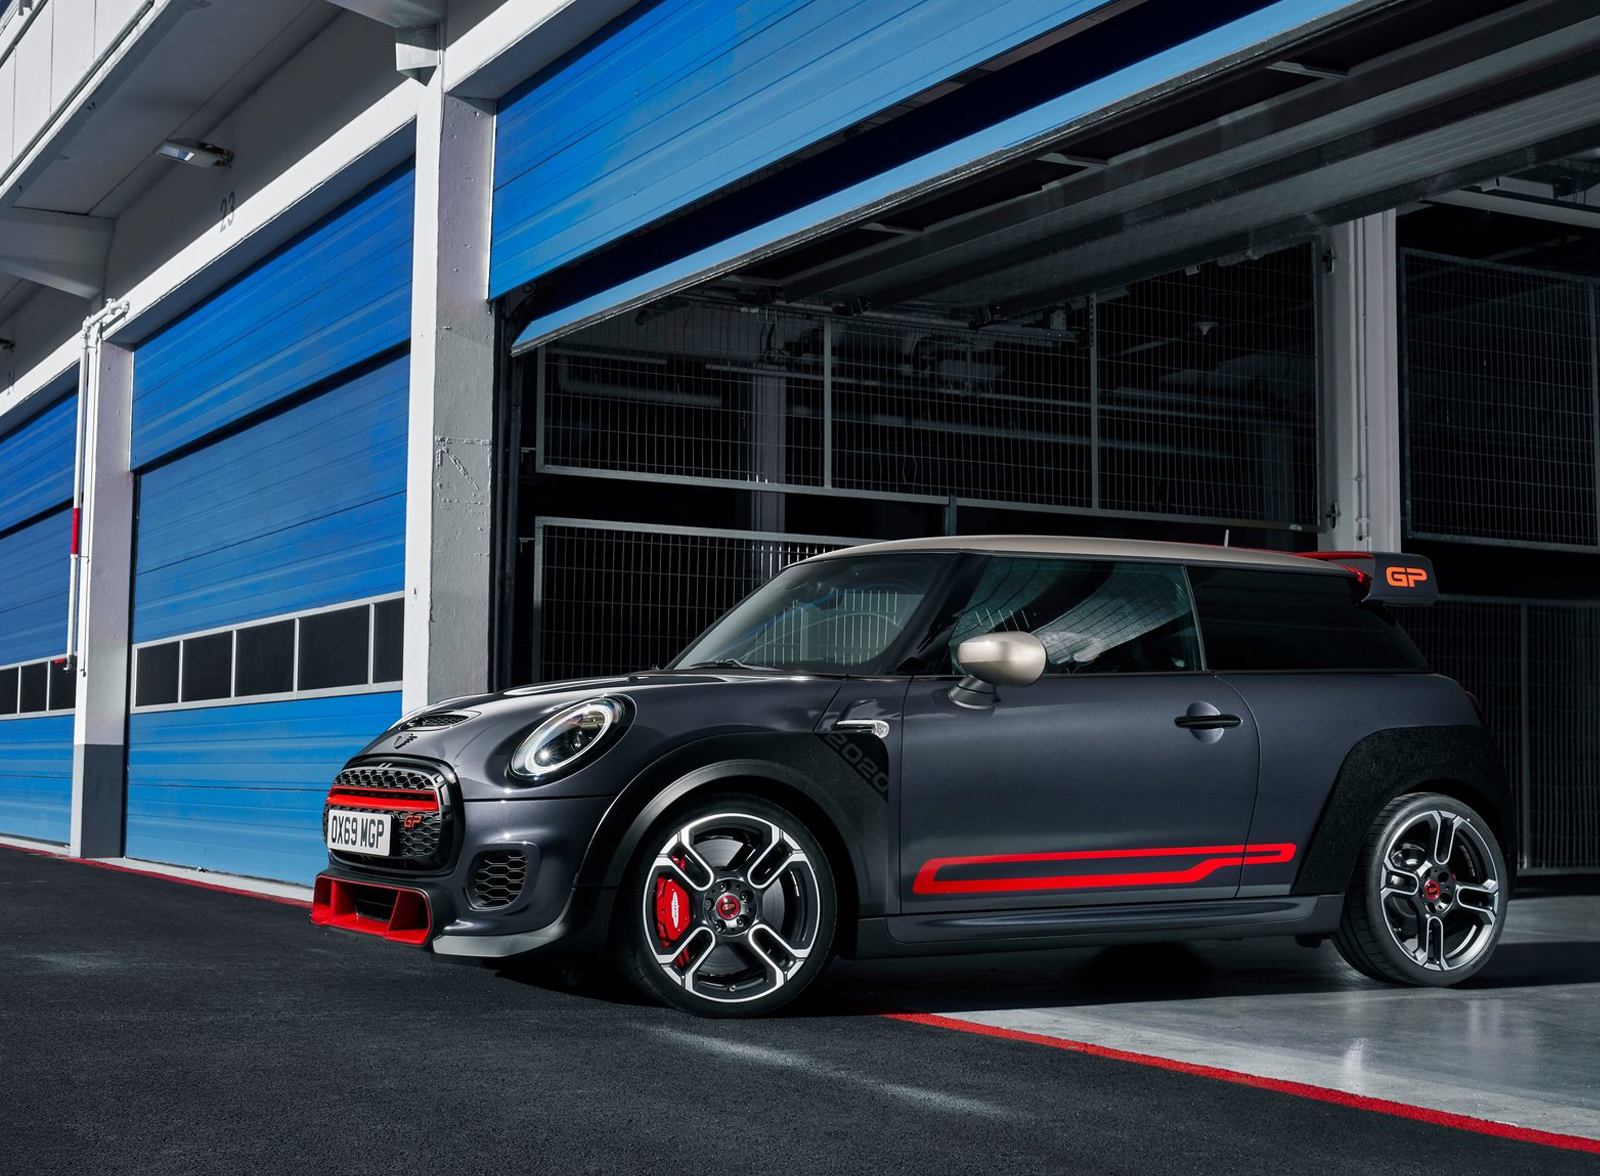 grey car MINI John Cooper with red highlights standing in blue garage